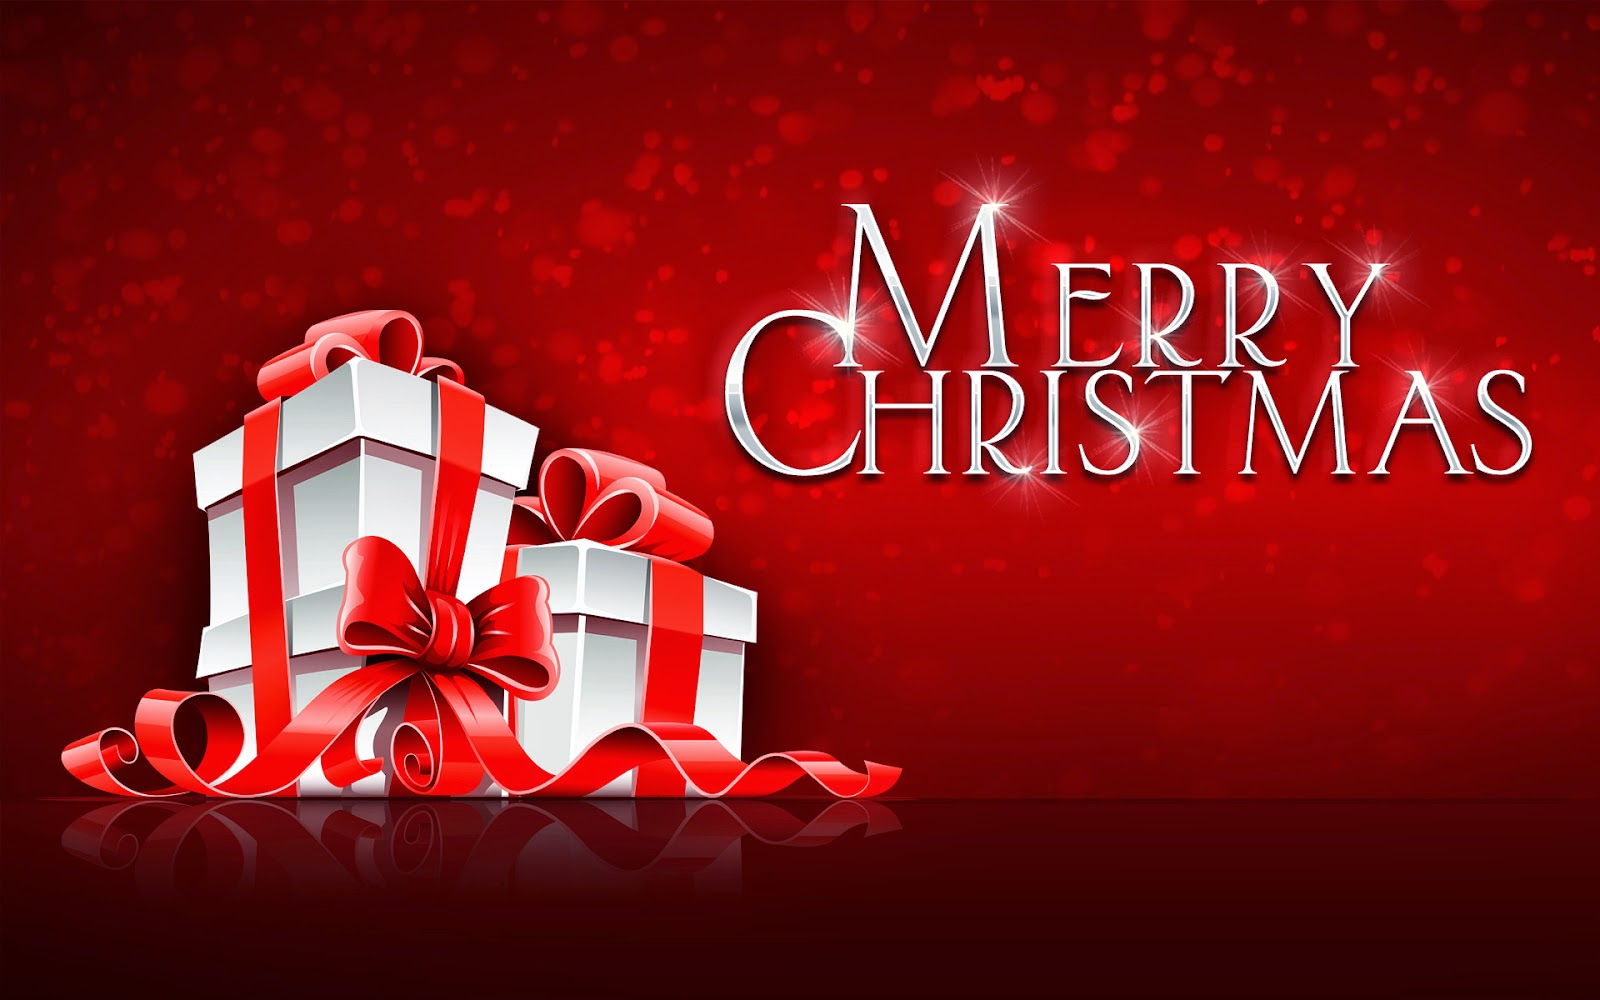 merry christmas - Merry Christmas Email